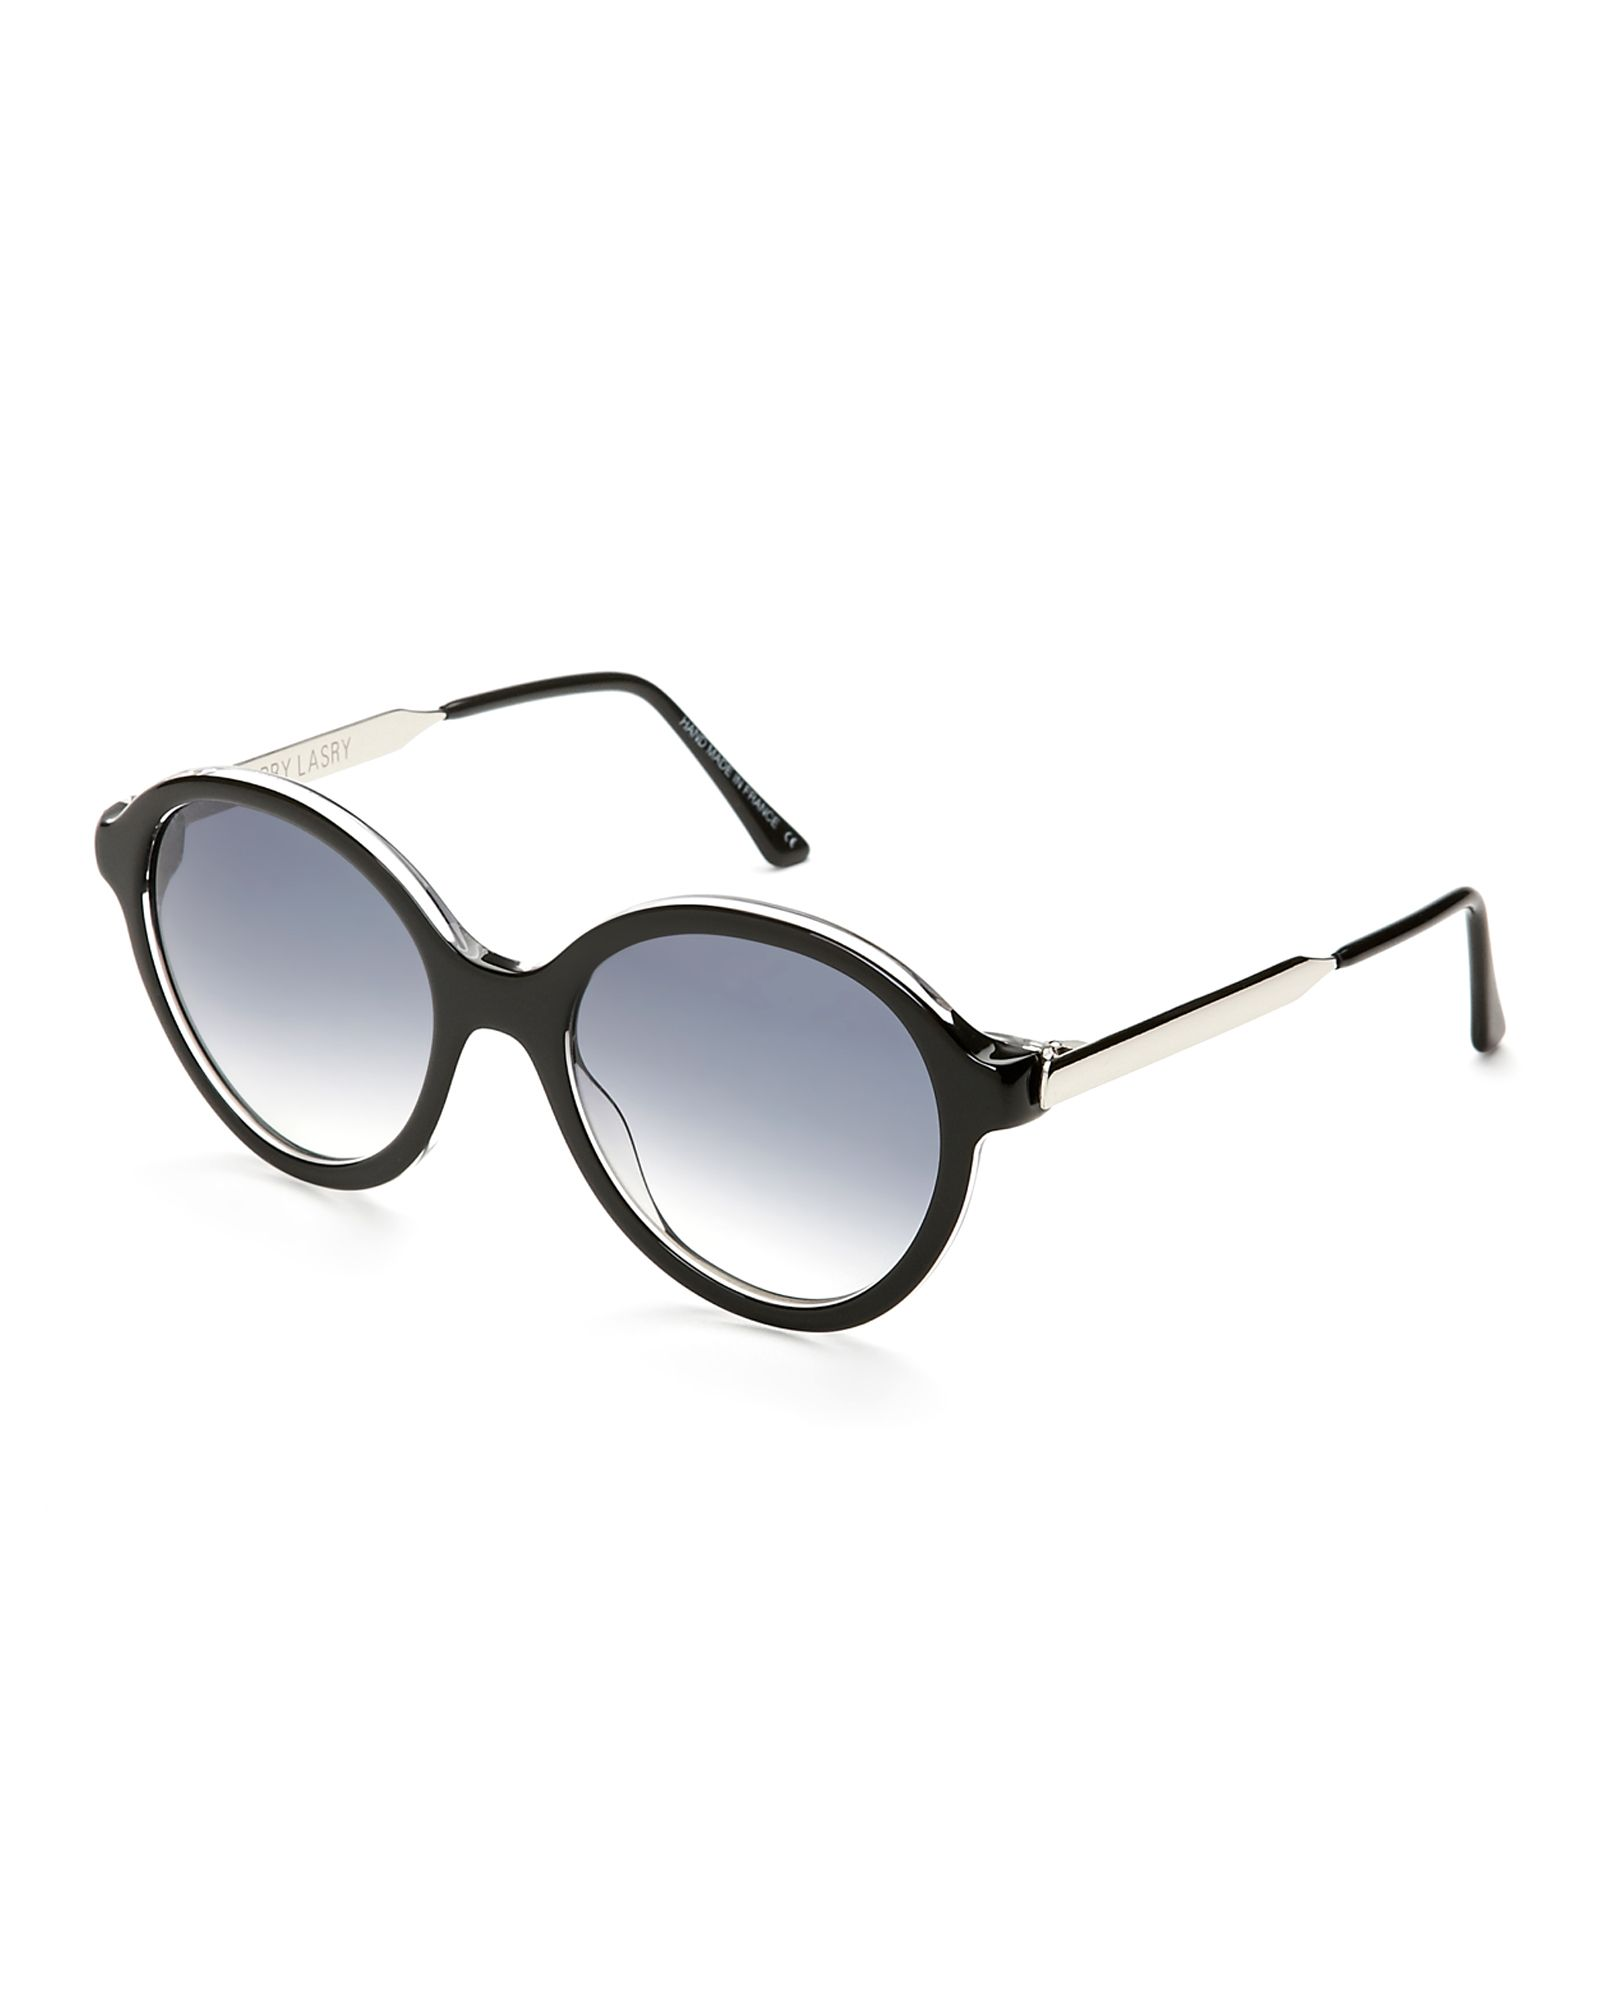 Thierry Lasry Black Lingery Round Sunglasses